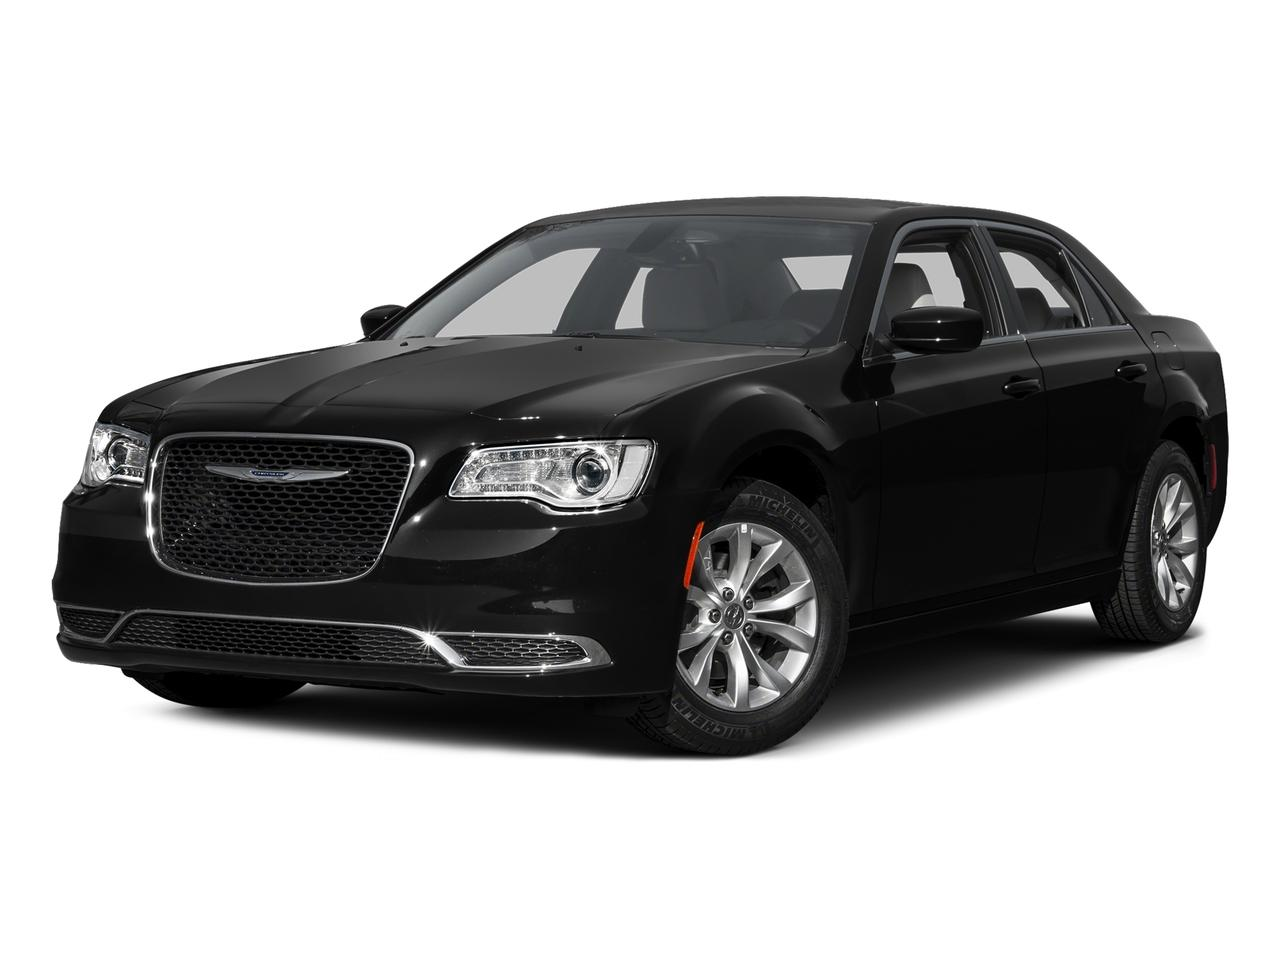 2015 Chrysler 300 Vehicle Photo in Joliet, IL 60586